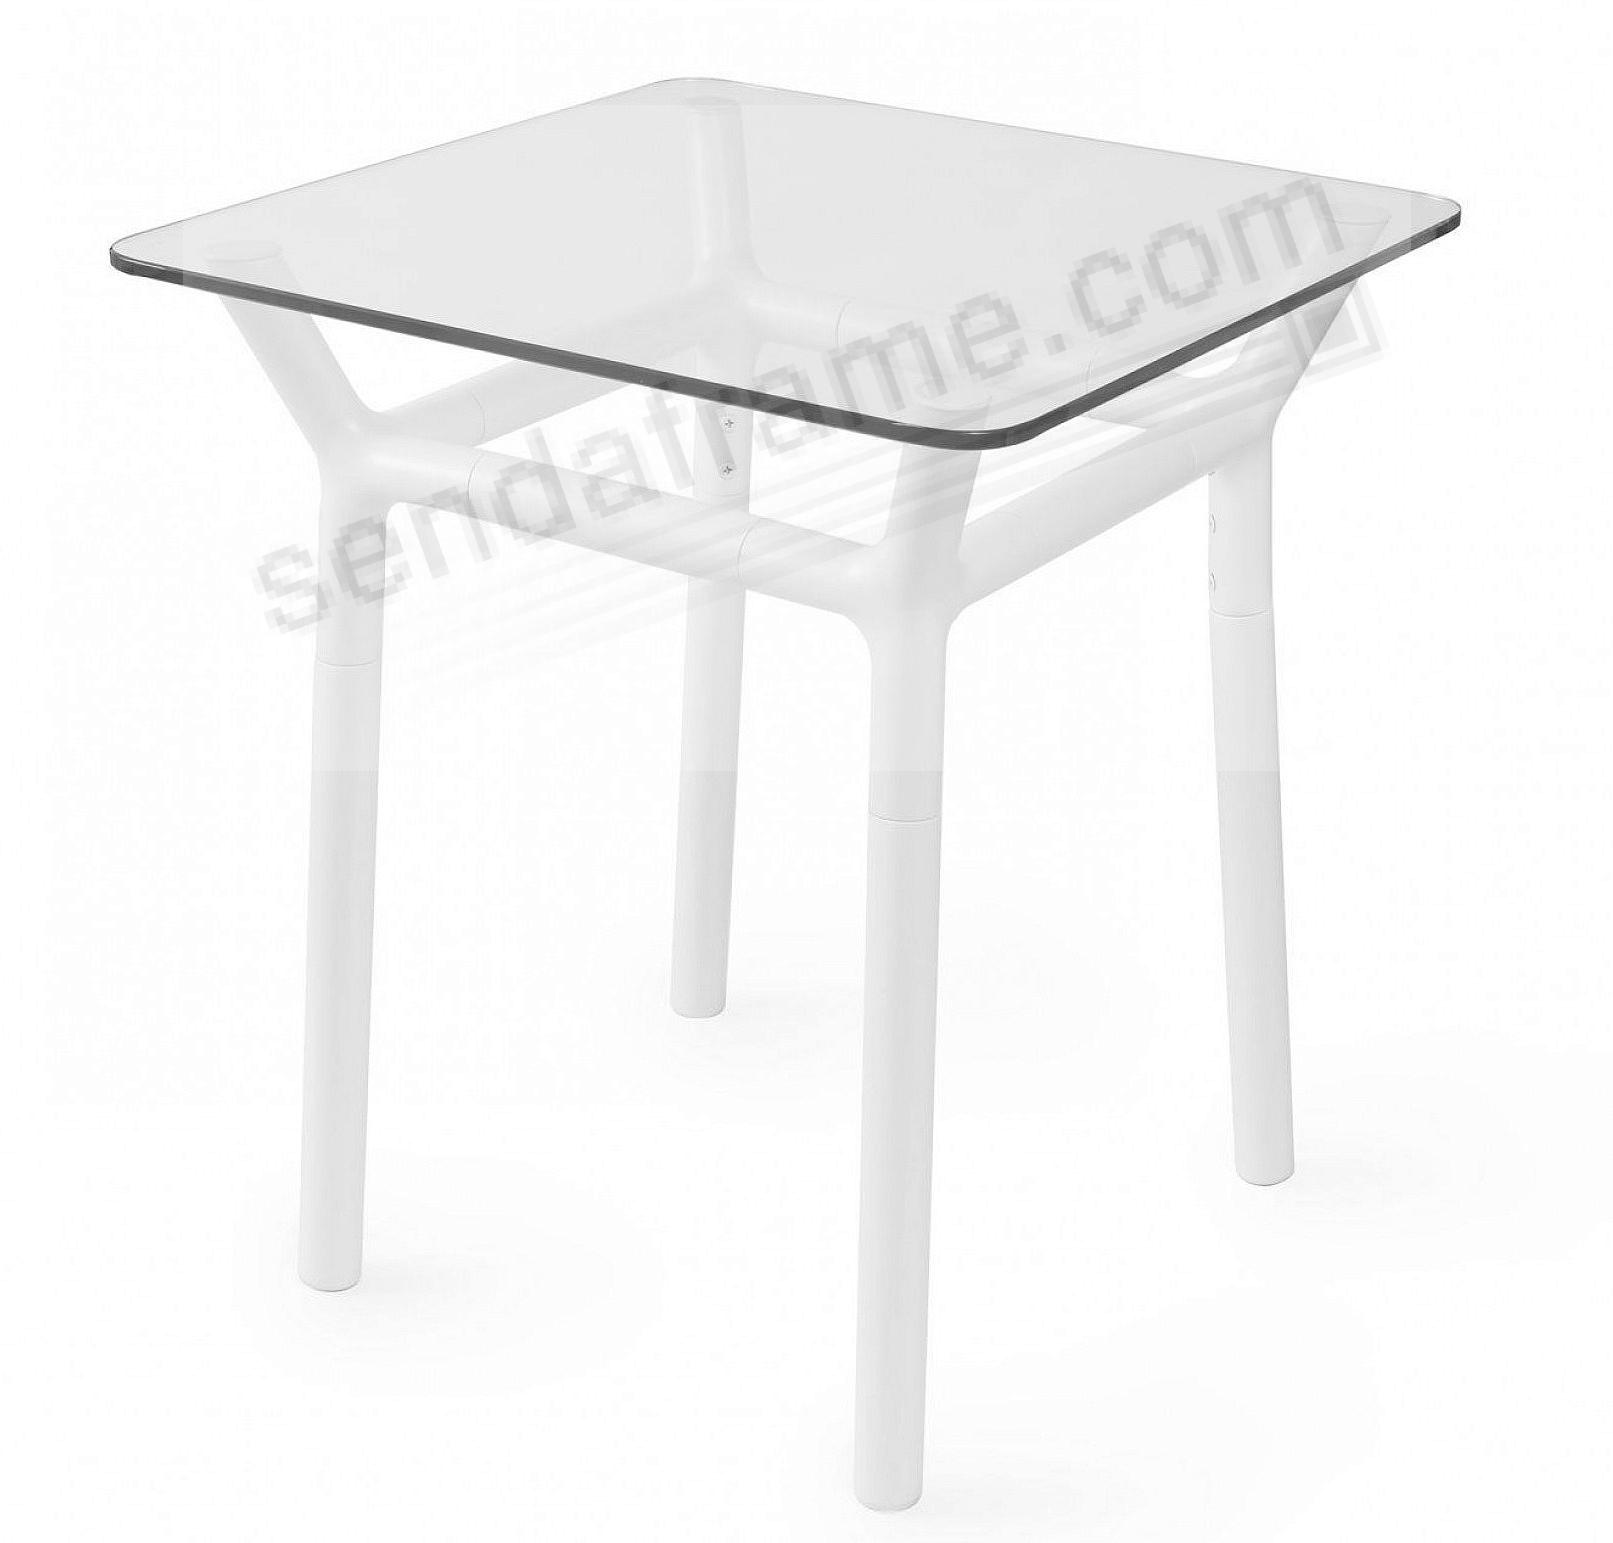 The Original KONNECT White Side Table by Umbra+®